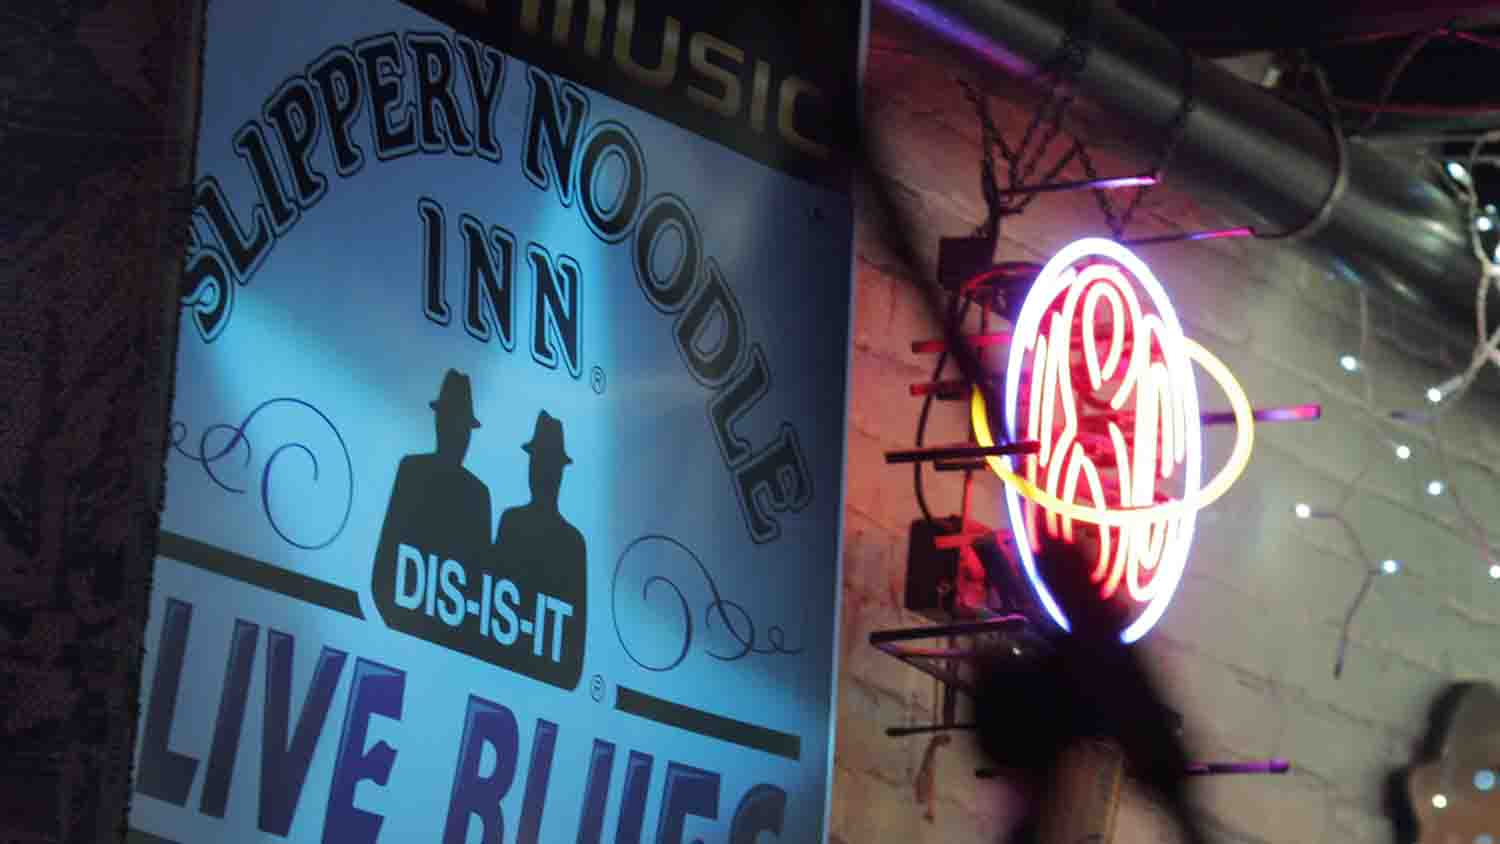 Slippery noodle inn 1